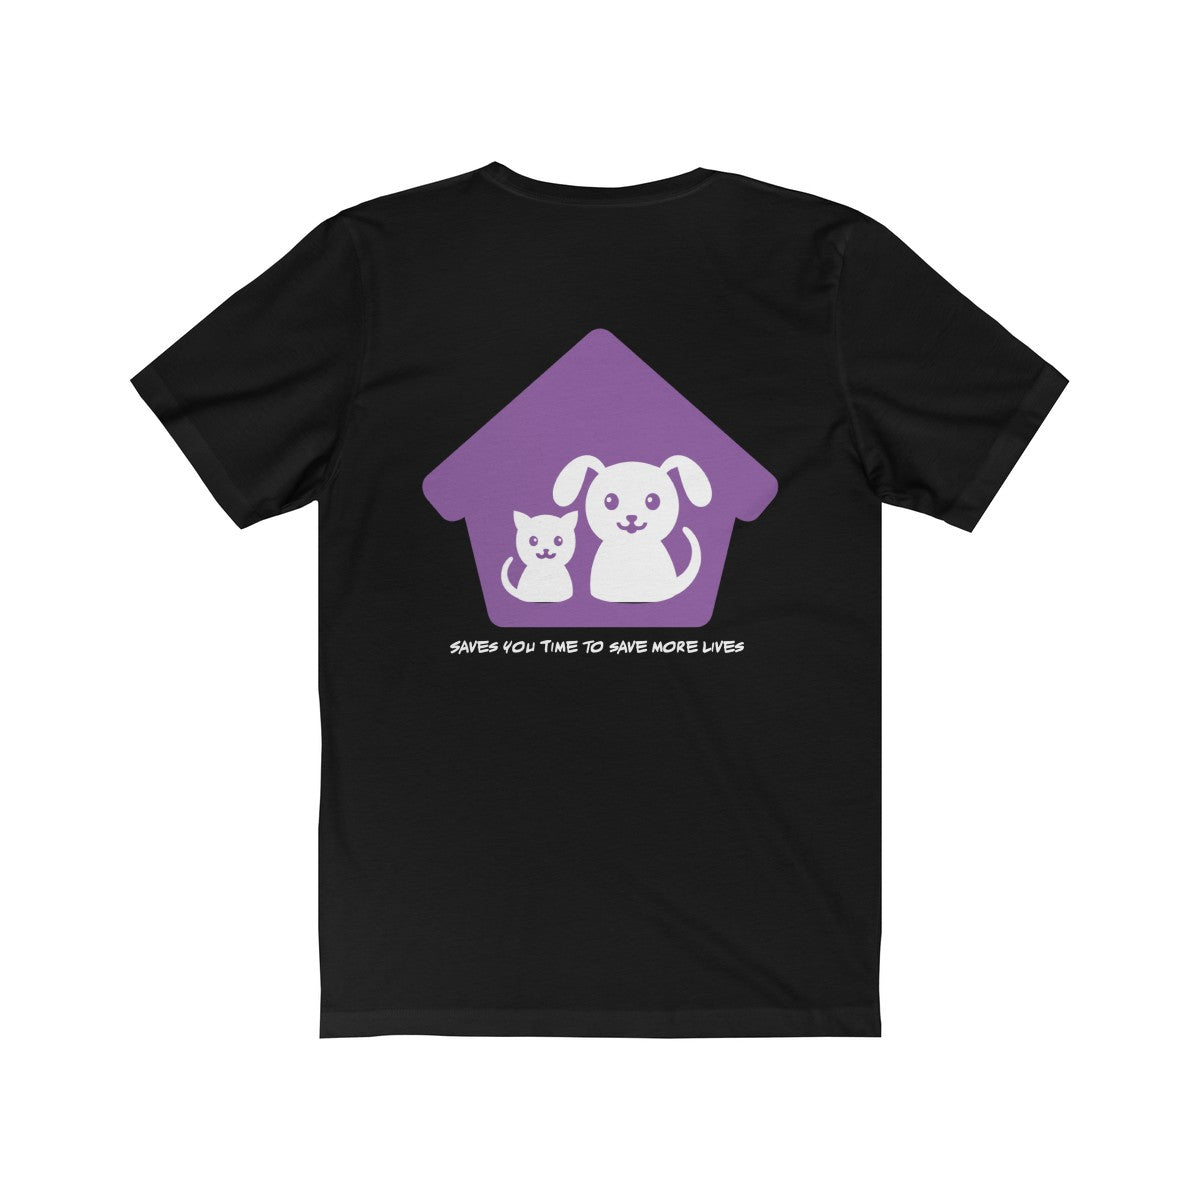 Expo Tee Paws Up - Marc (XL) - Allthingsfrenchie LLC